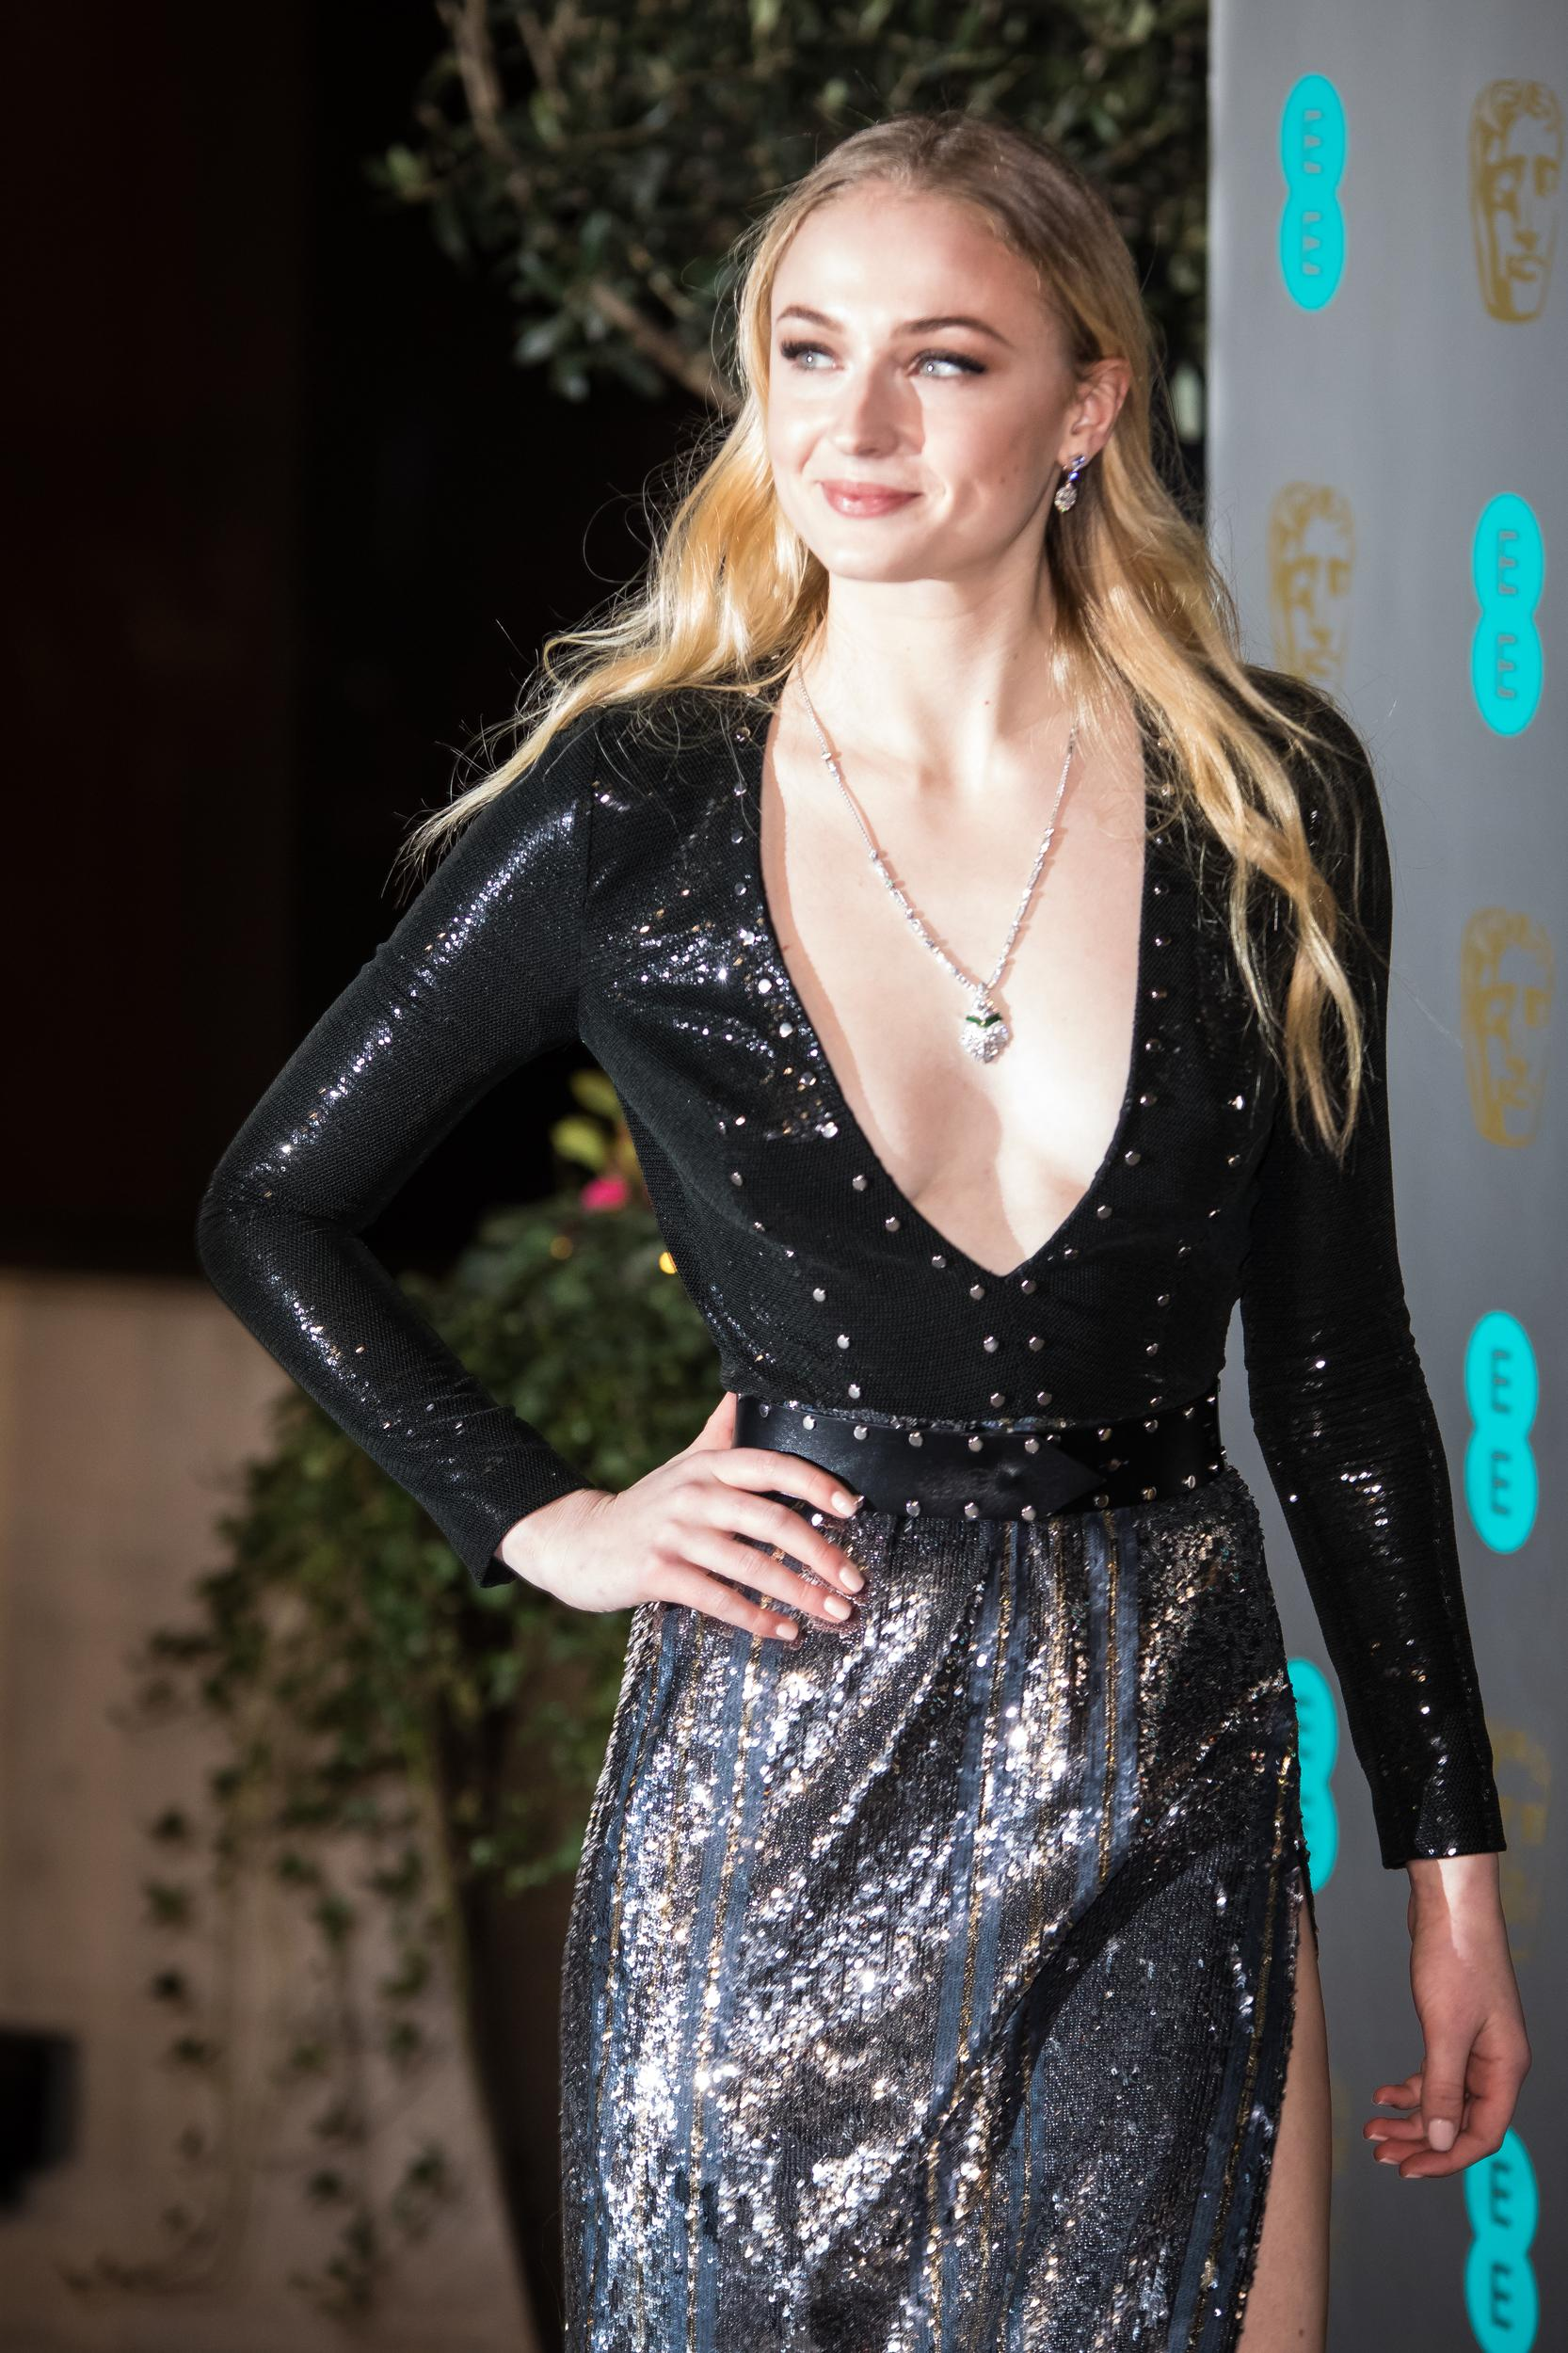 Sophie Turner poses for photographers upon arrival at the BAFTA Film Awards after party, in London, Sunday, Feb. 12, 2017. (Photo by Vianney Le Caer/Invision/AP)